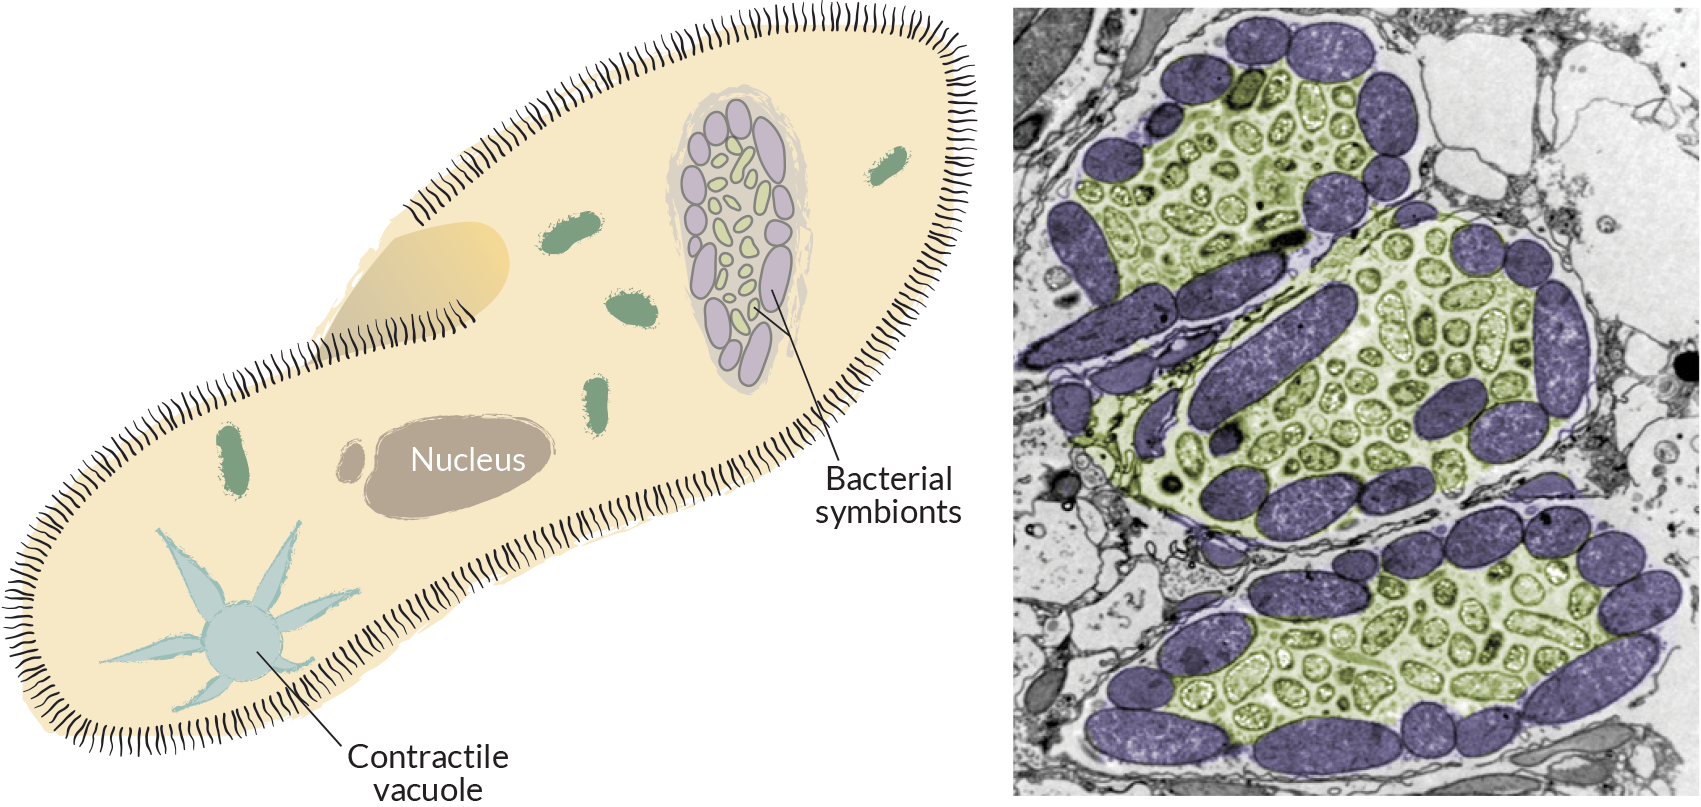 (Left) Diagram of a ciliate that hosts different kinds of bacteria in its cell. (Right) Colorized electron micrograph showing compartments inside a ciliate where different kinds of bacteria live. (Illustration by Jack Cook, photo by Virginia Edgcomb, Woods Hole Oceanographic Institution)